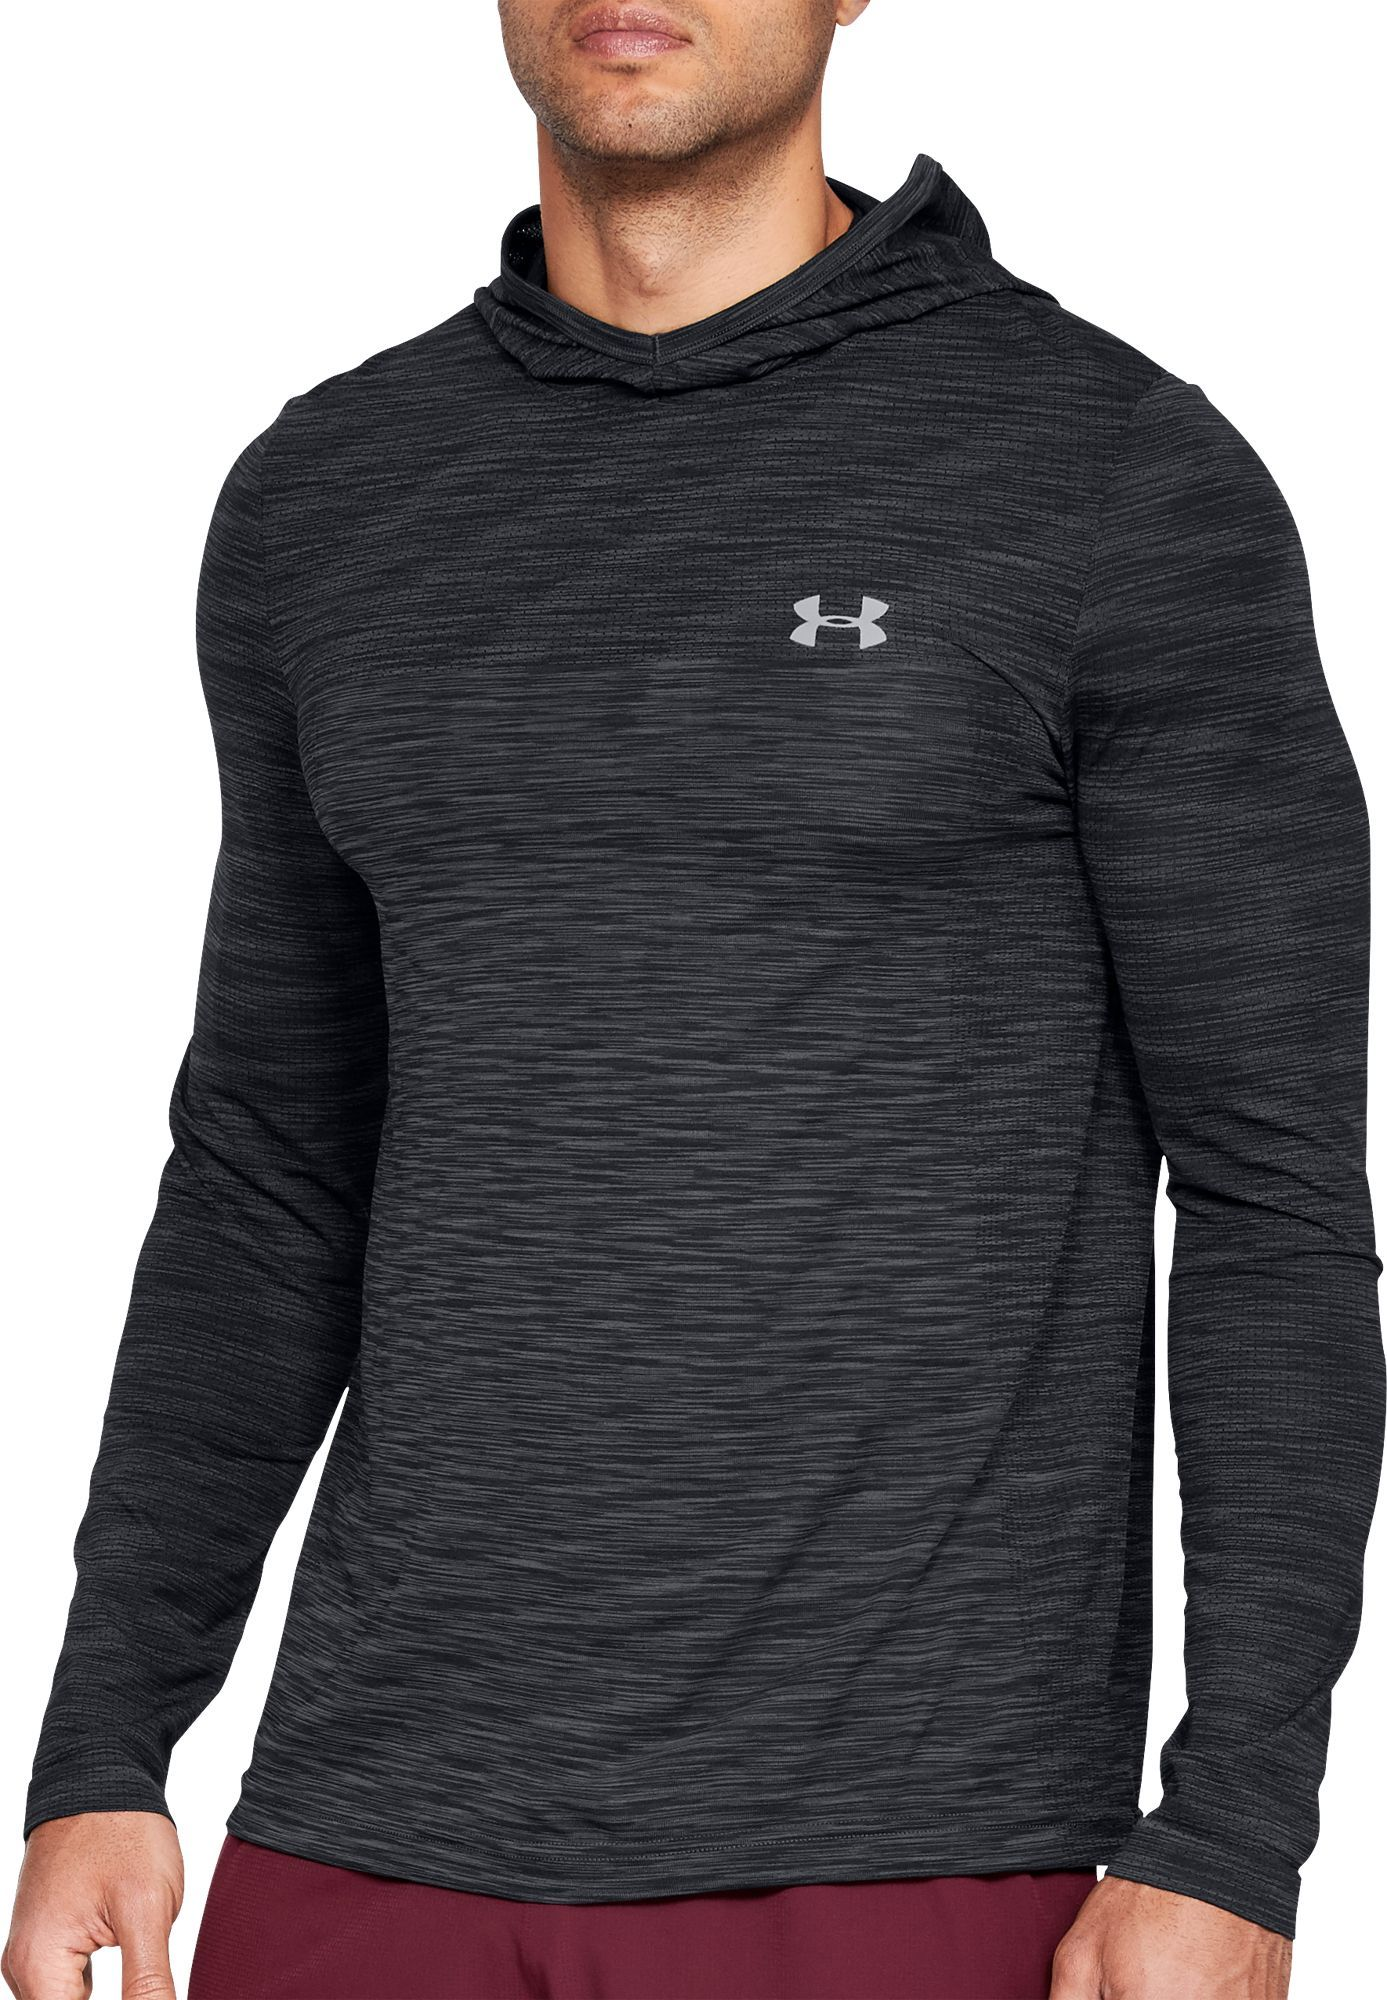 9d925f9f07 Under Armour Men's Vanish Seamless Hoodie, Size: Small, Black ...